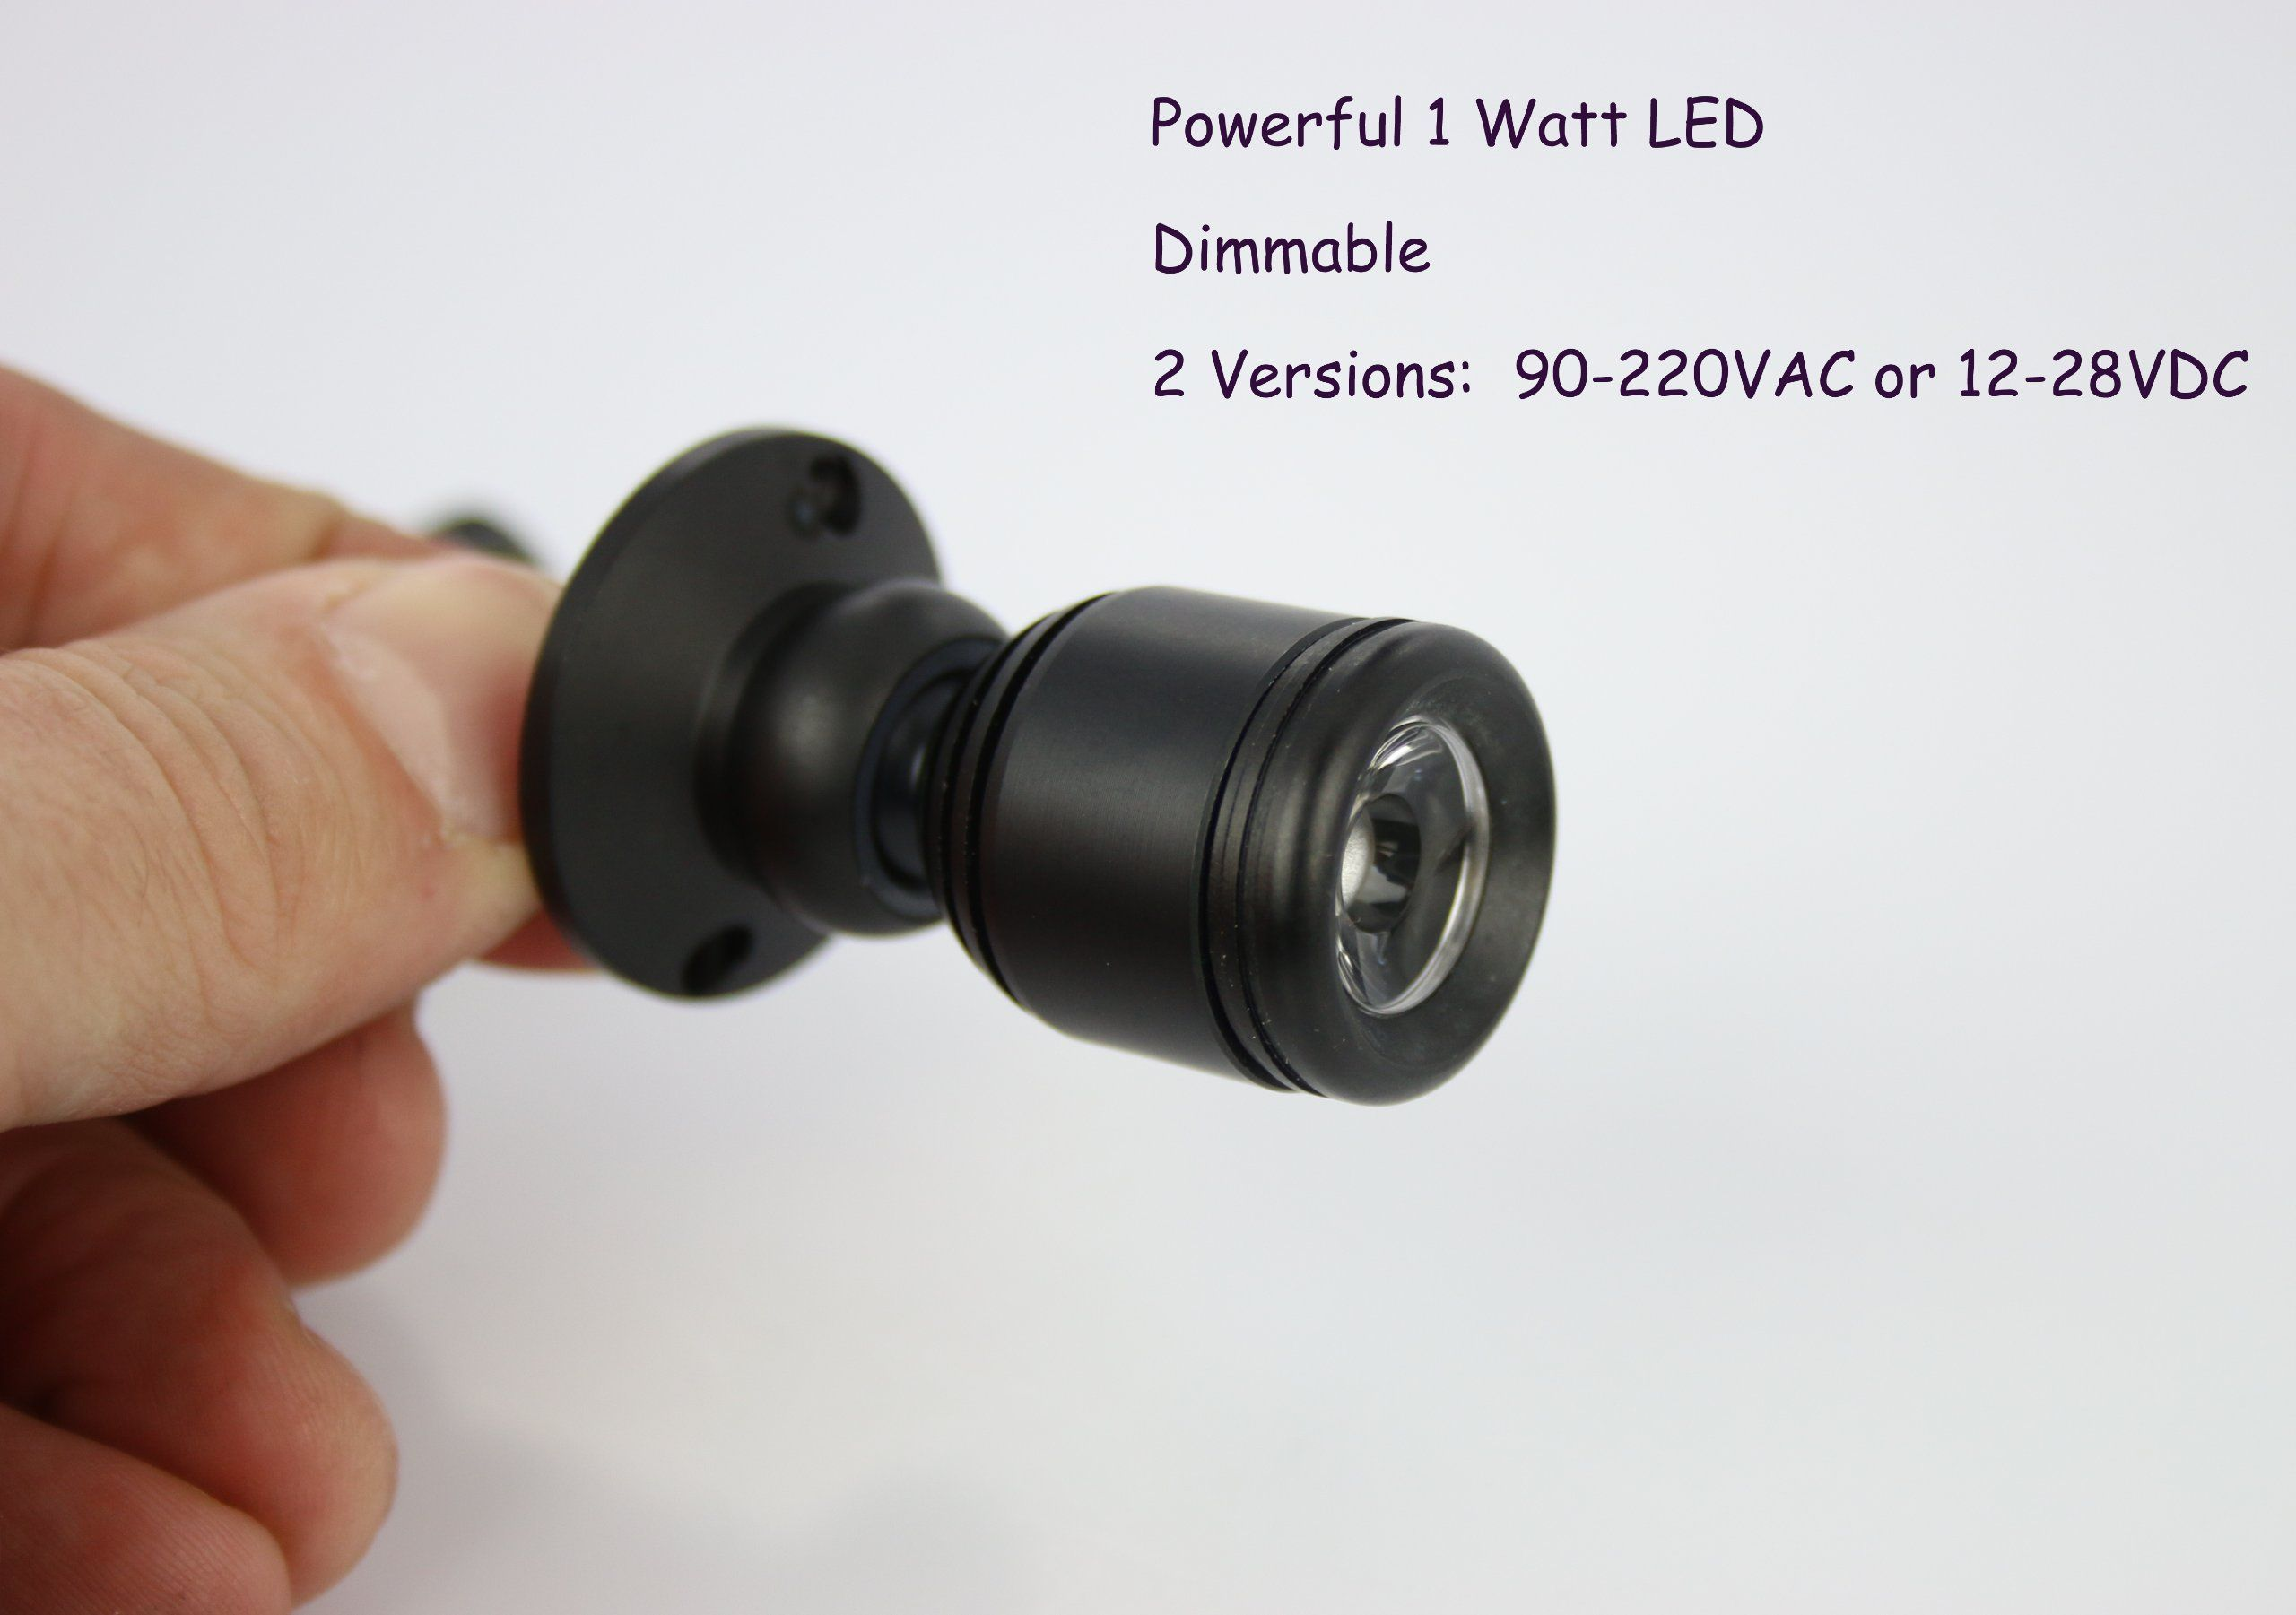 Micro Pivoting Led Spotlight 1 Watt High Power Dimmable Led Tiny Size Warm White Led Led Spotlight White Lead Power Led